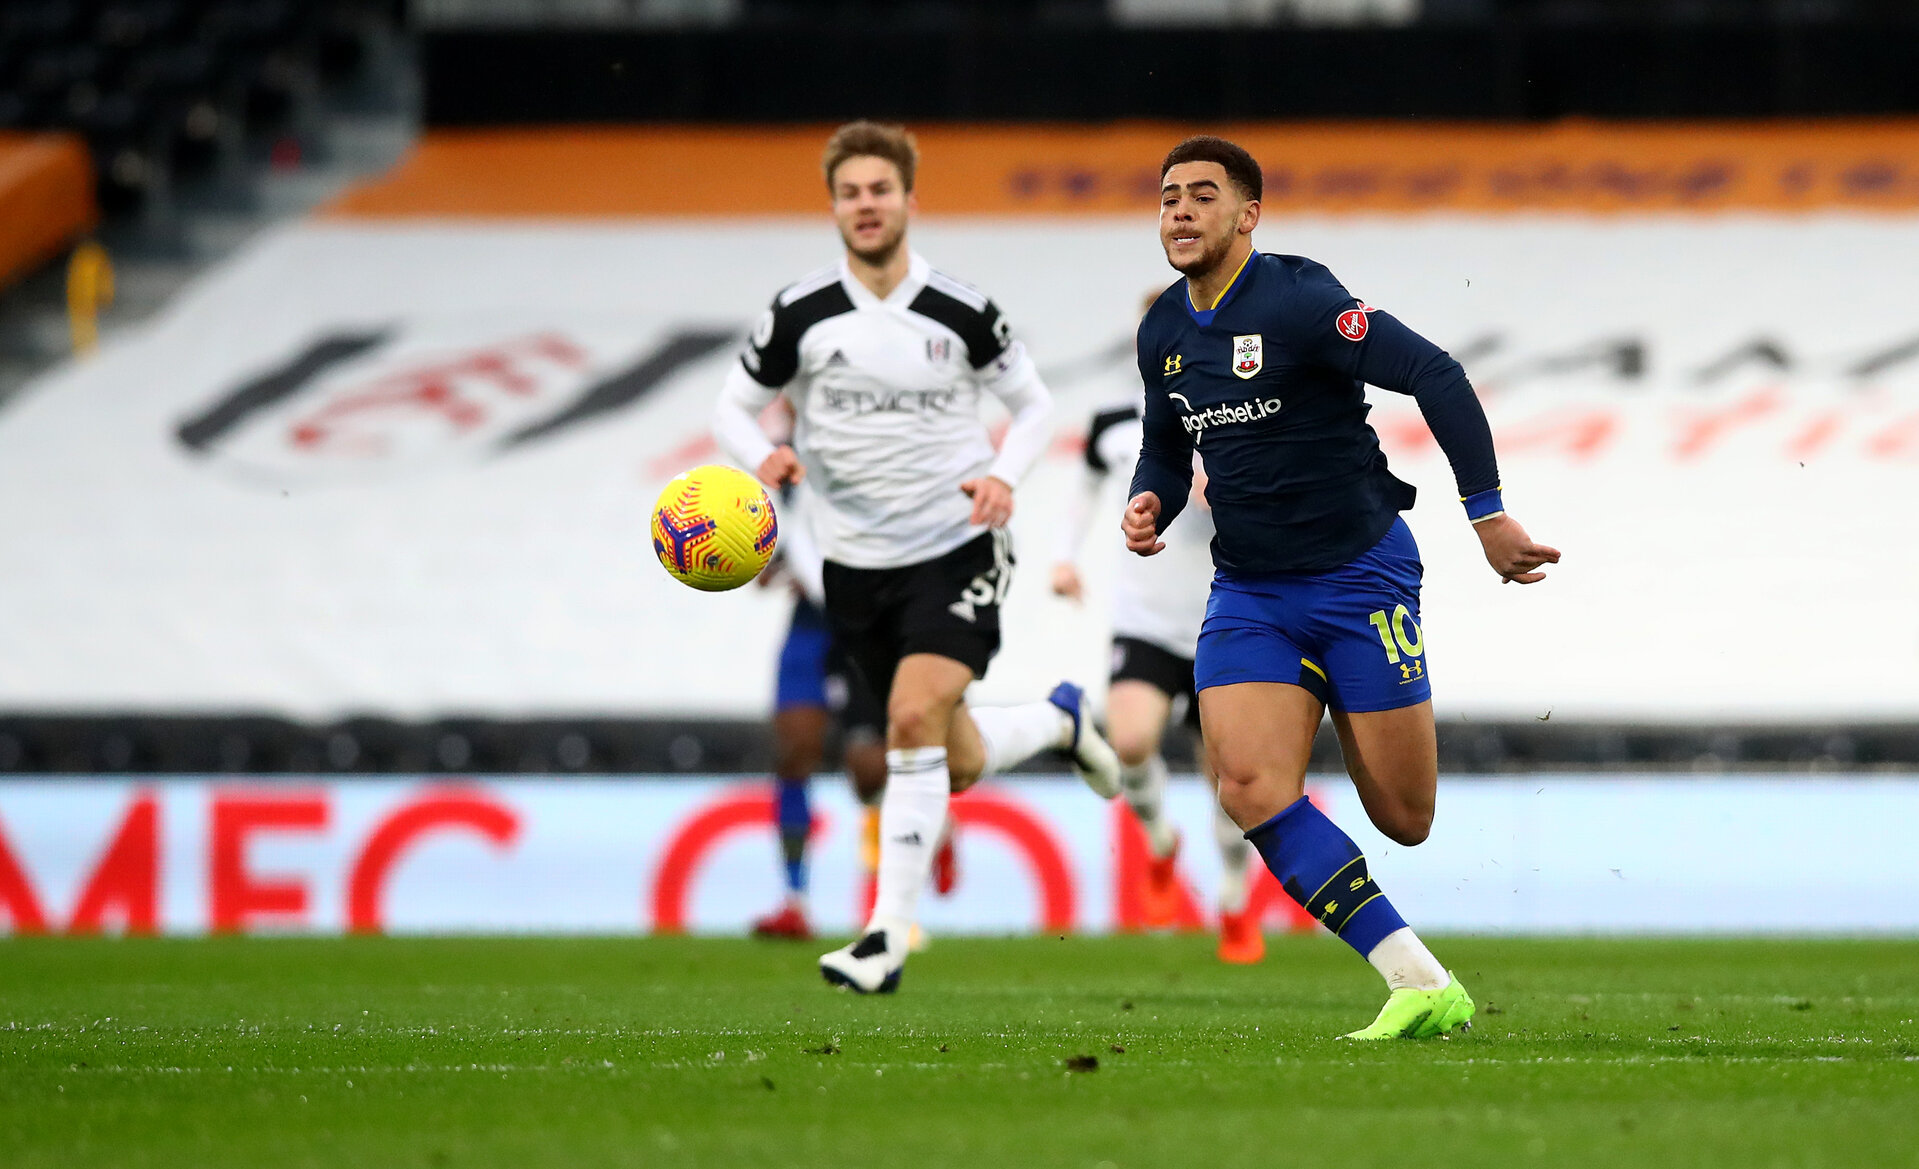 LONDON, ENGLAND - DECEMBER 26: Che Adams of Southampton during the Premier League match between Fulham and Southampton at Craven Cottage on December 26, 2020 in London, England. The match will be played without fans, behind closed doors as a Covid-19 precaution. (Photo by Matt Watson/Southampton FC via Getty Images)